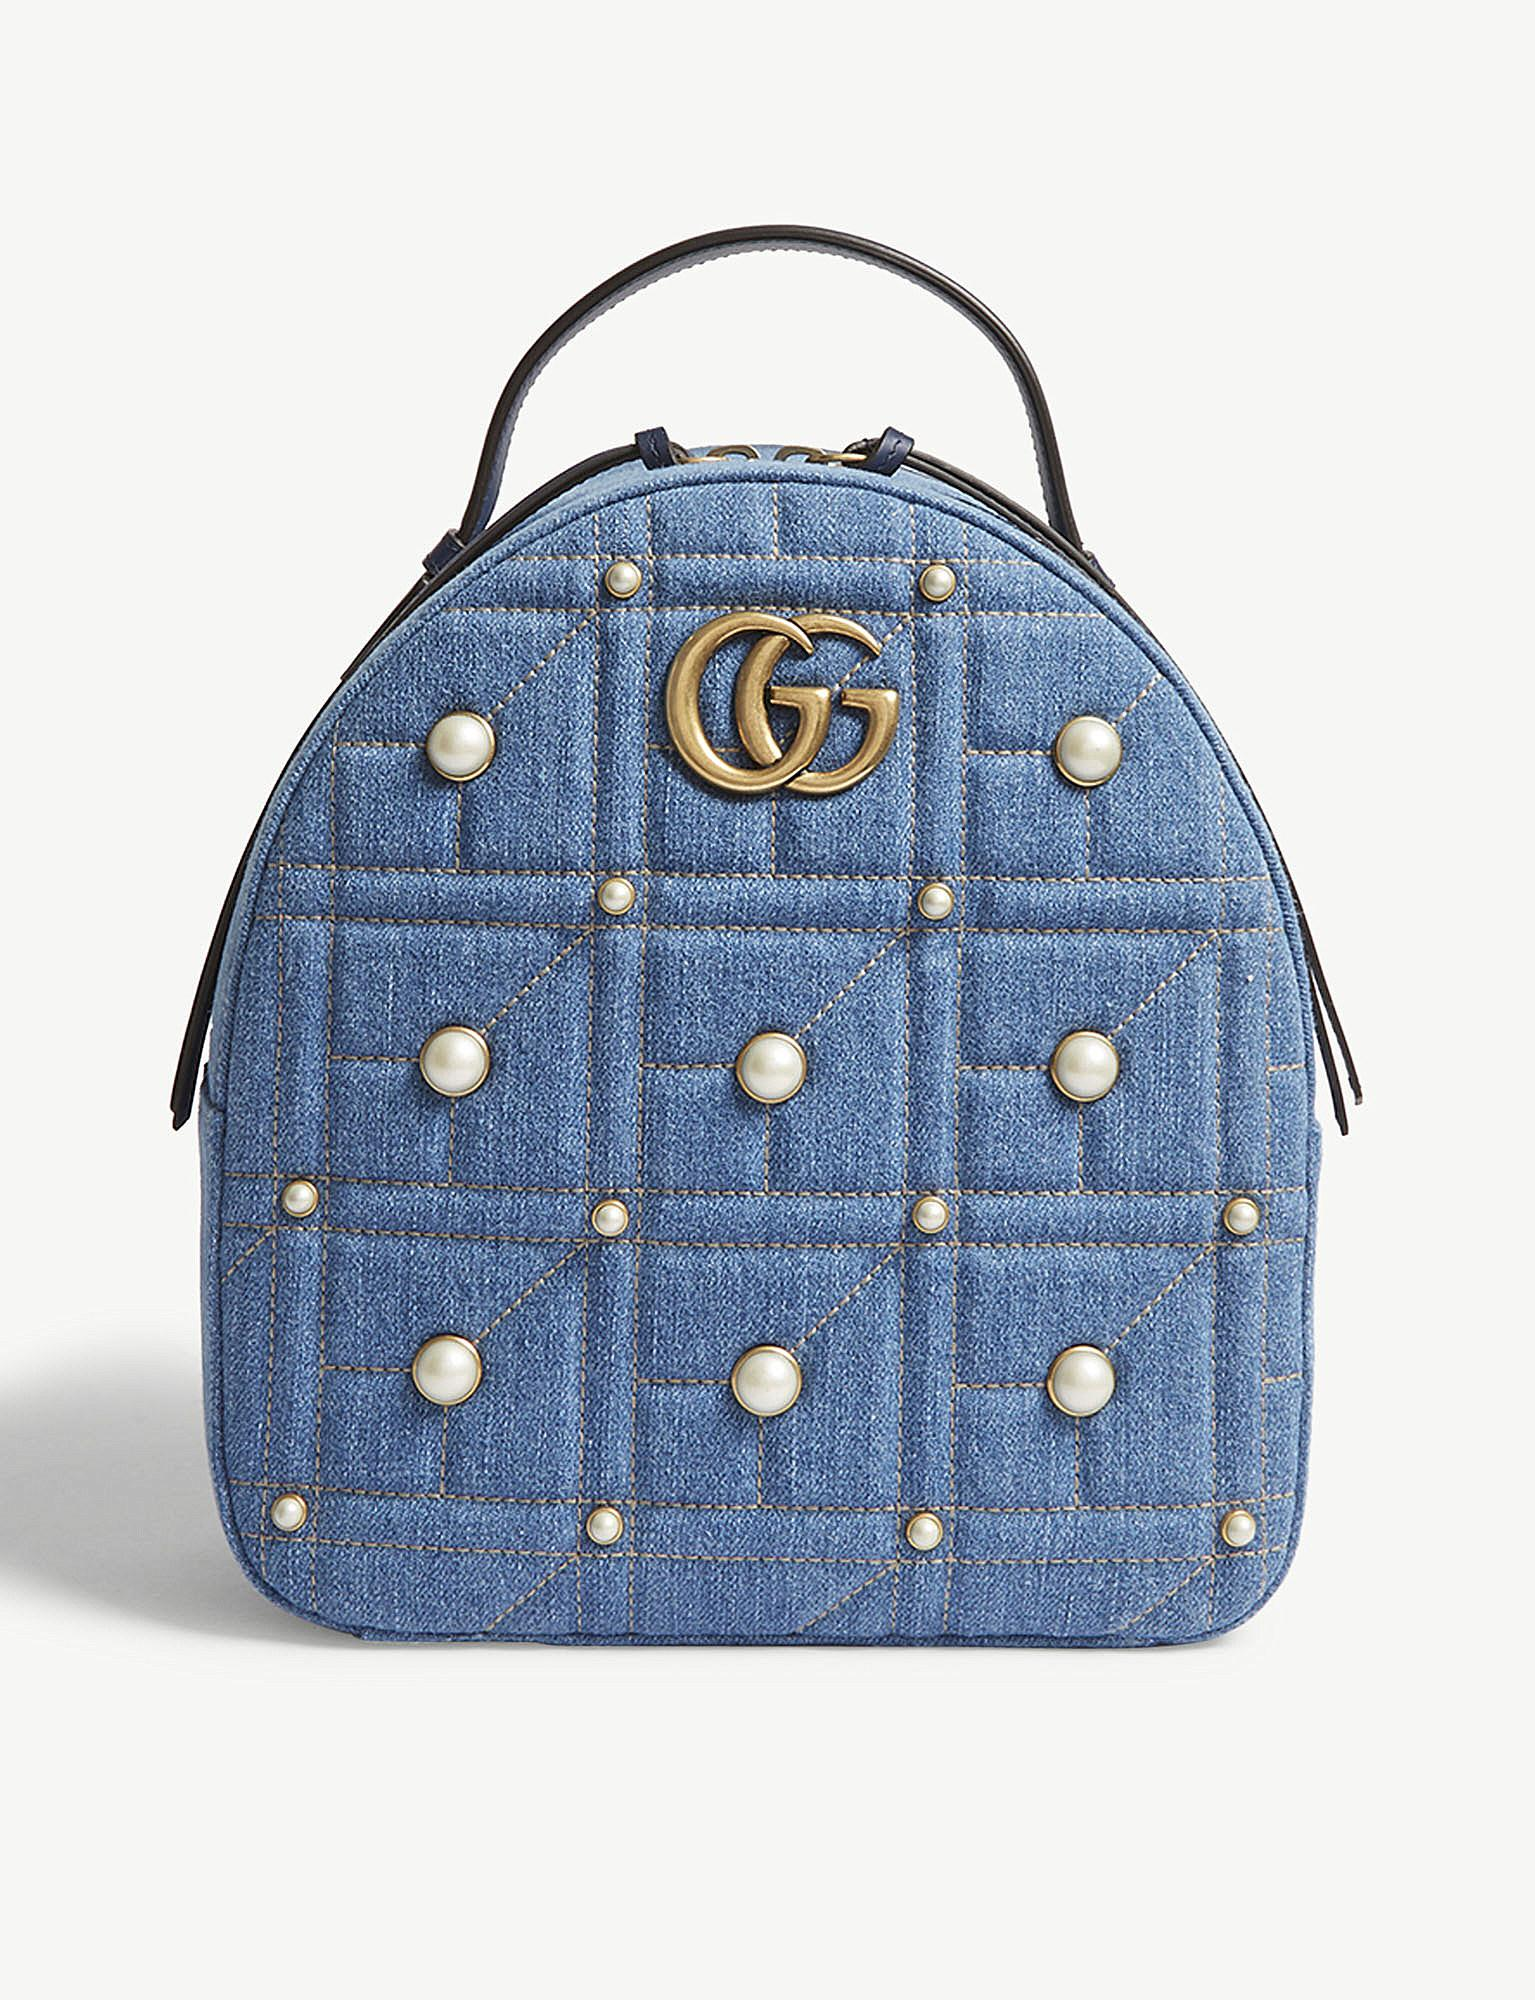 Lyst - Gucci Gg Marmont Denim Backpack in Blue 7d34b1ad38177